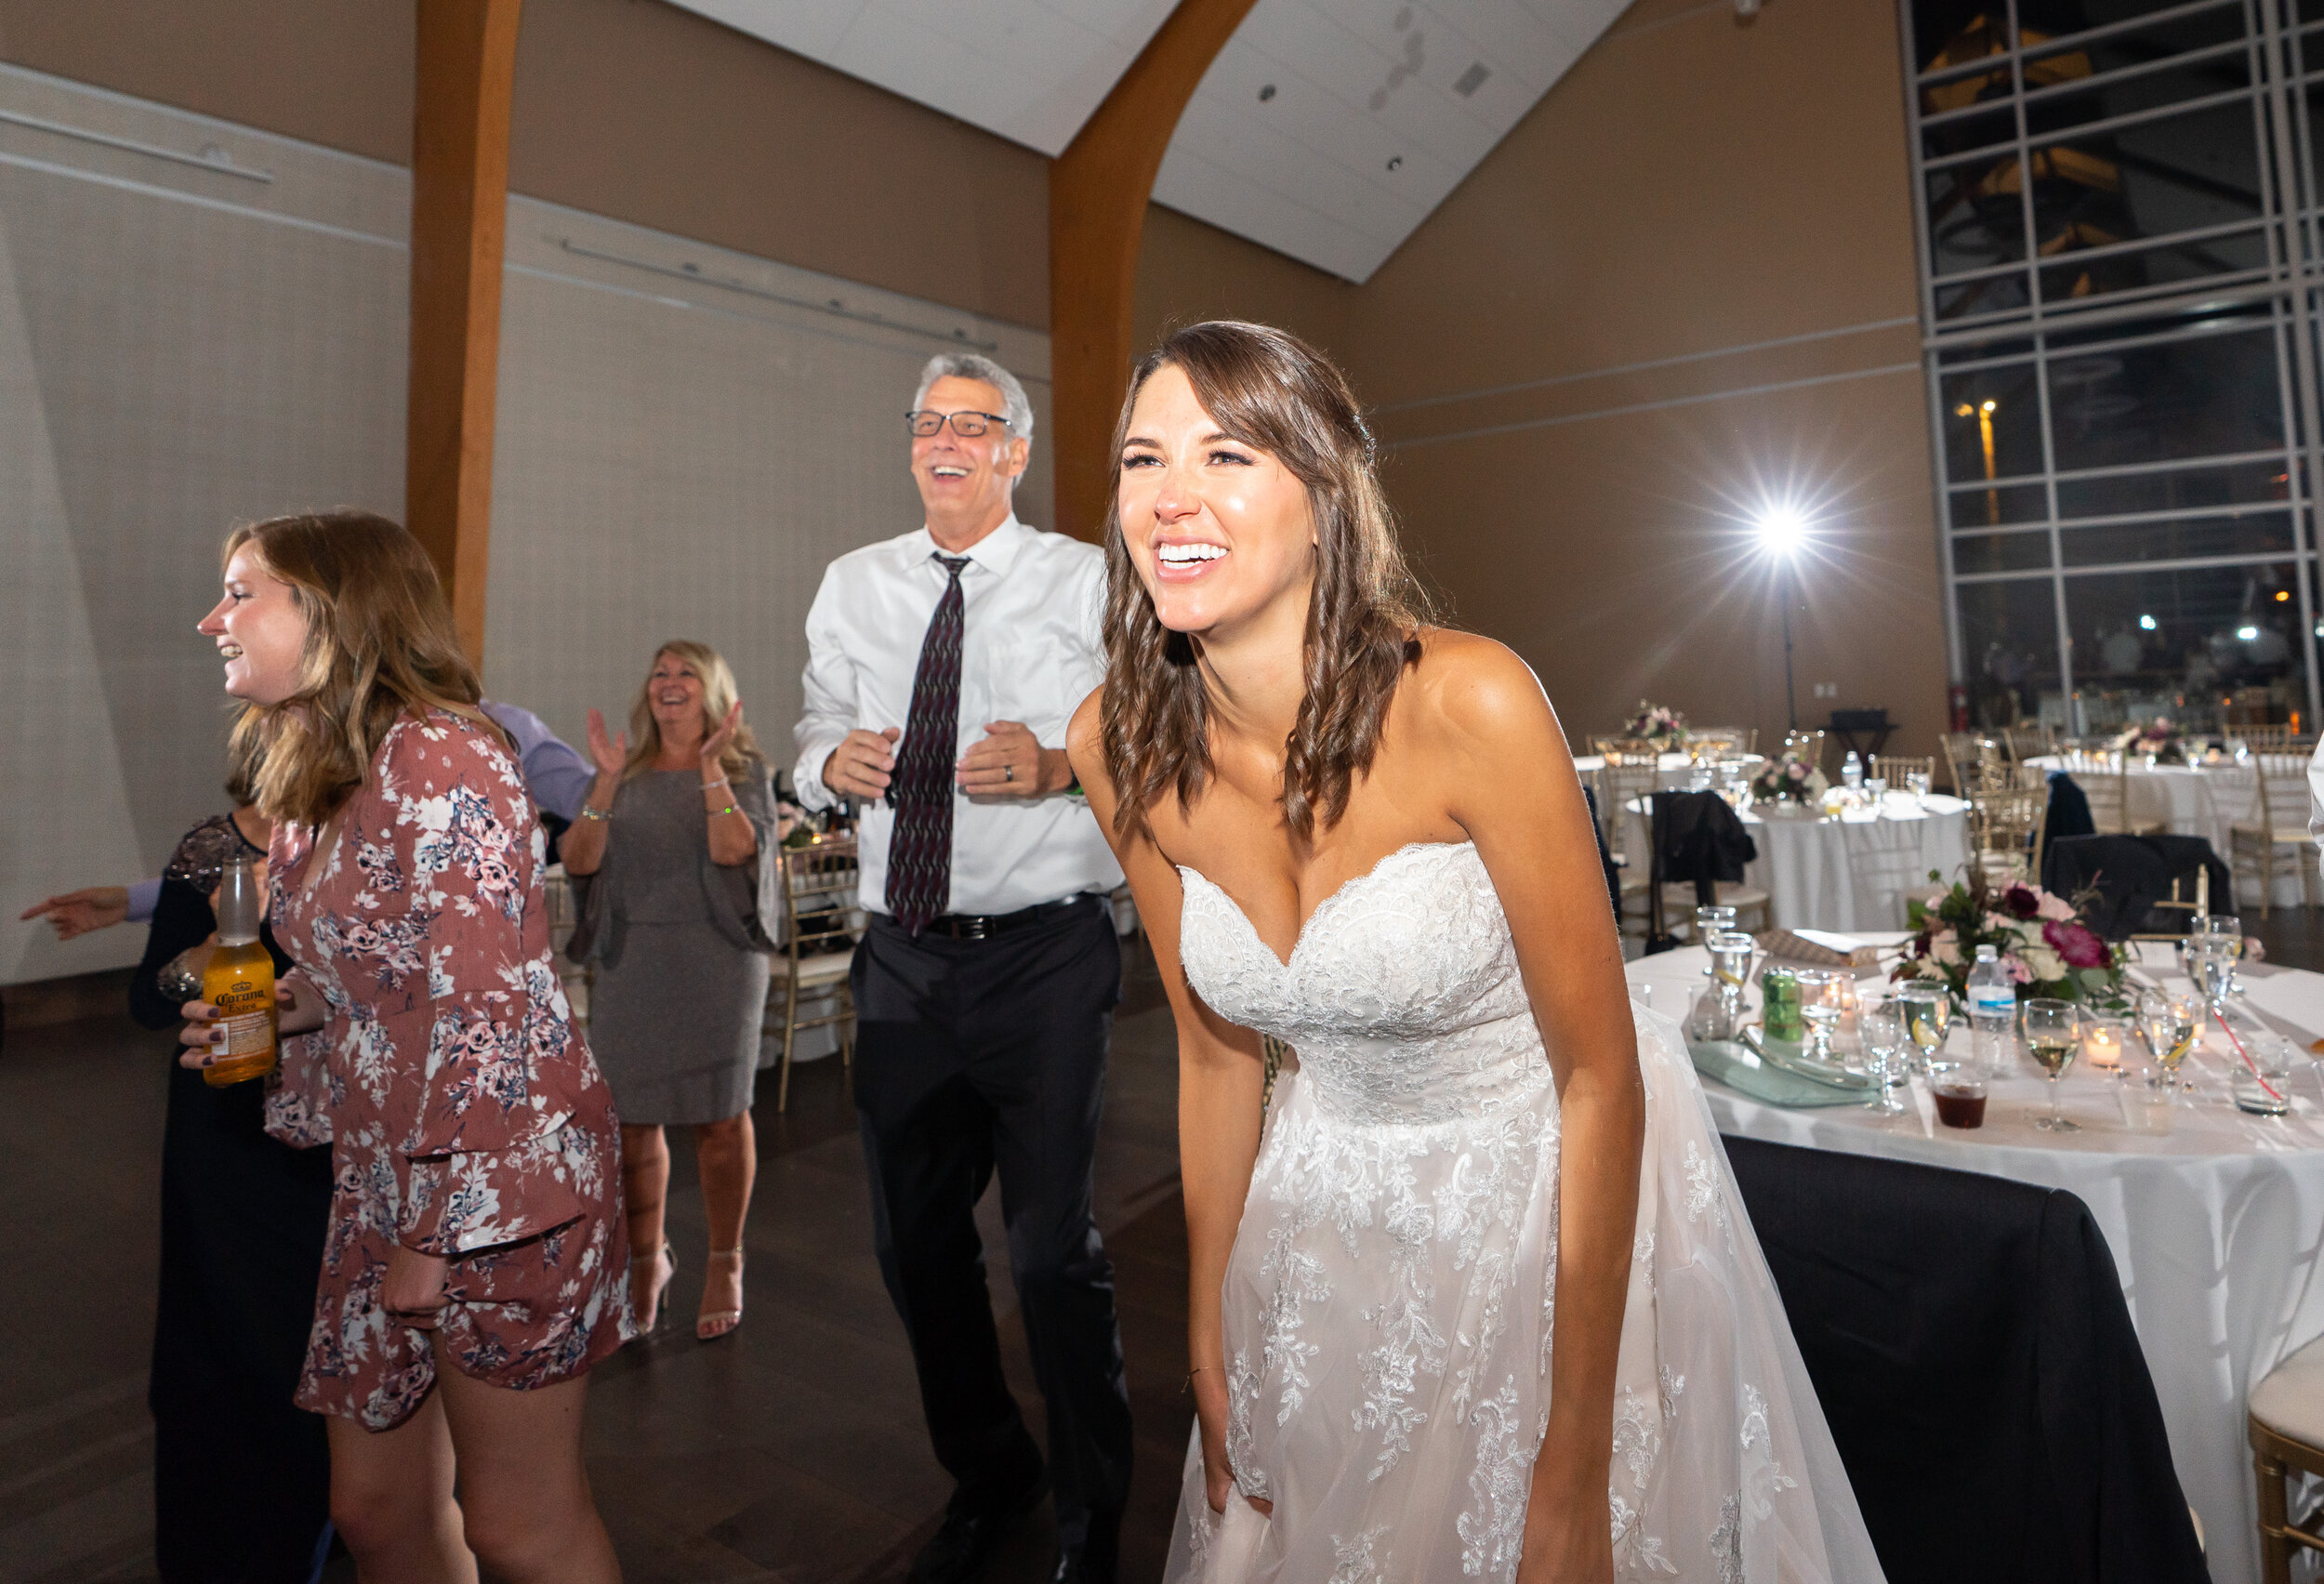 Bride watching the groom lifted in the air at Riverview Occoquan